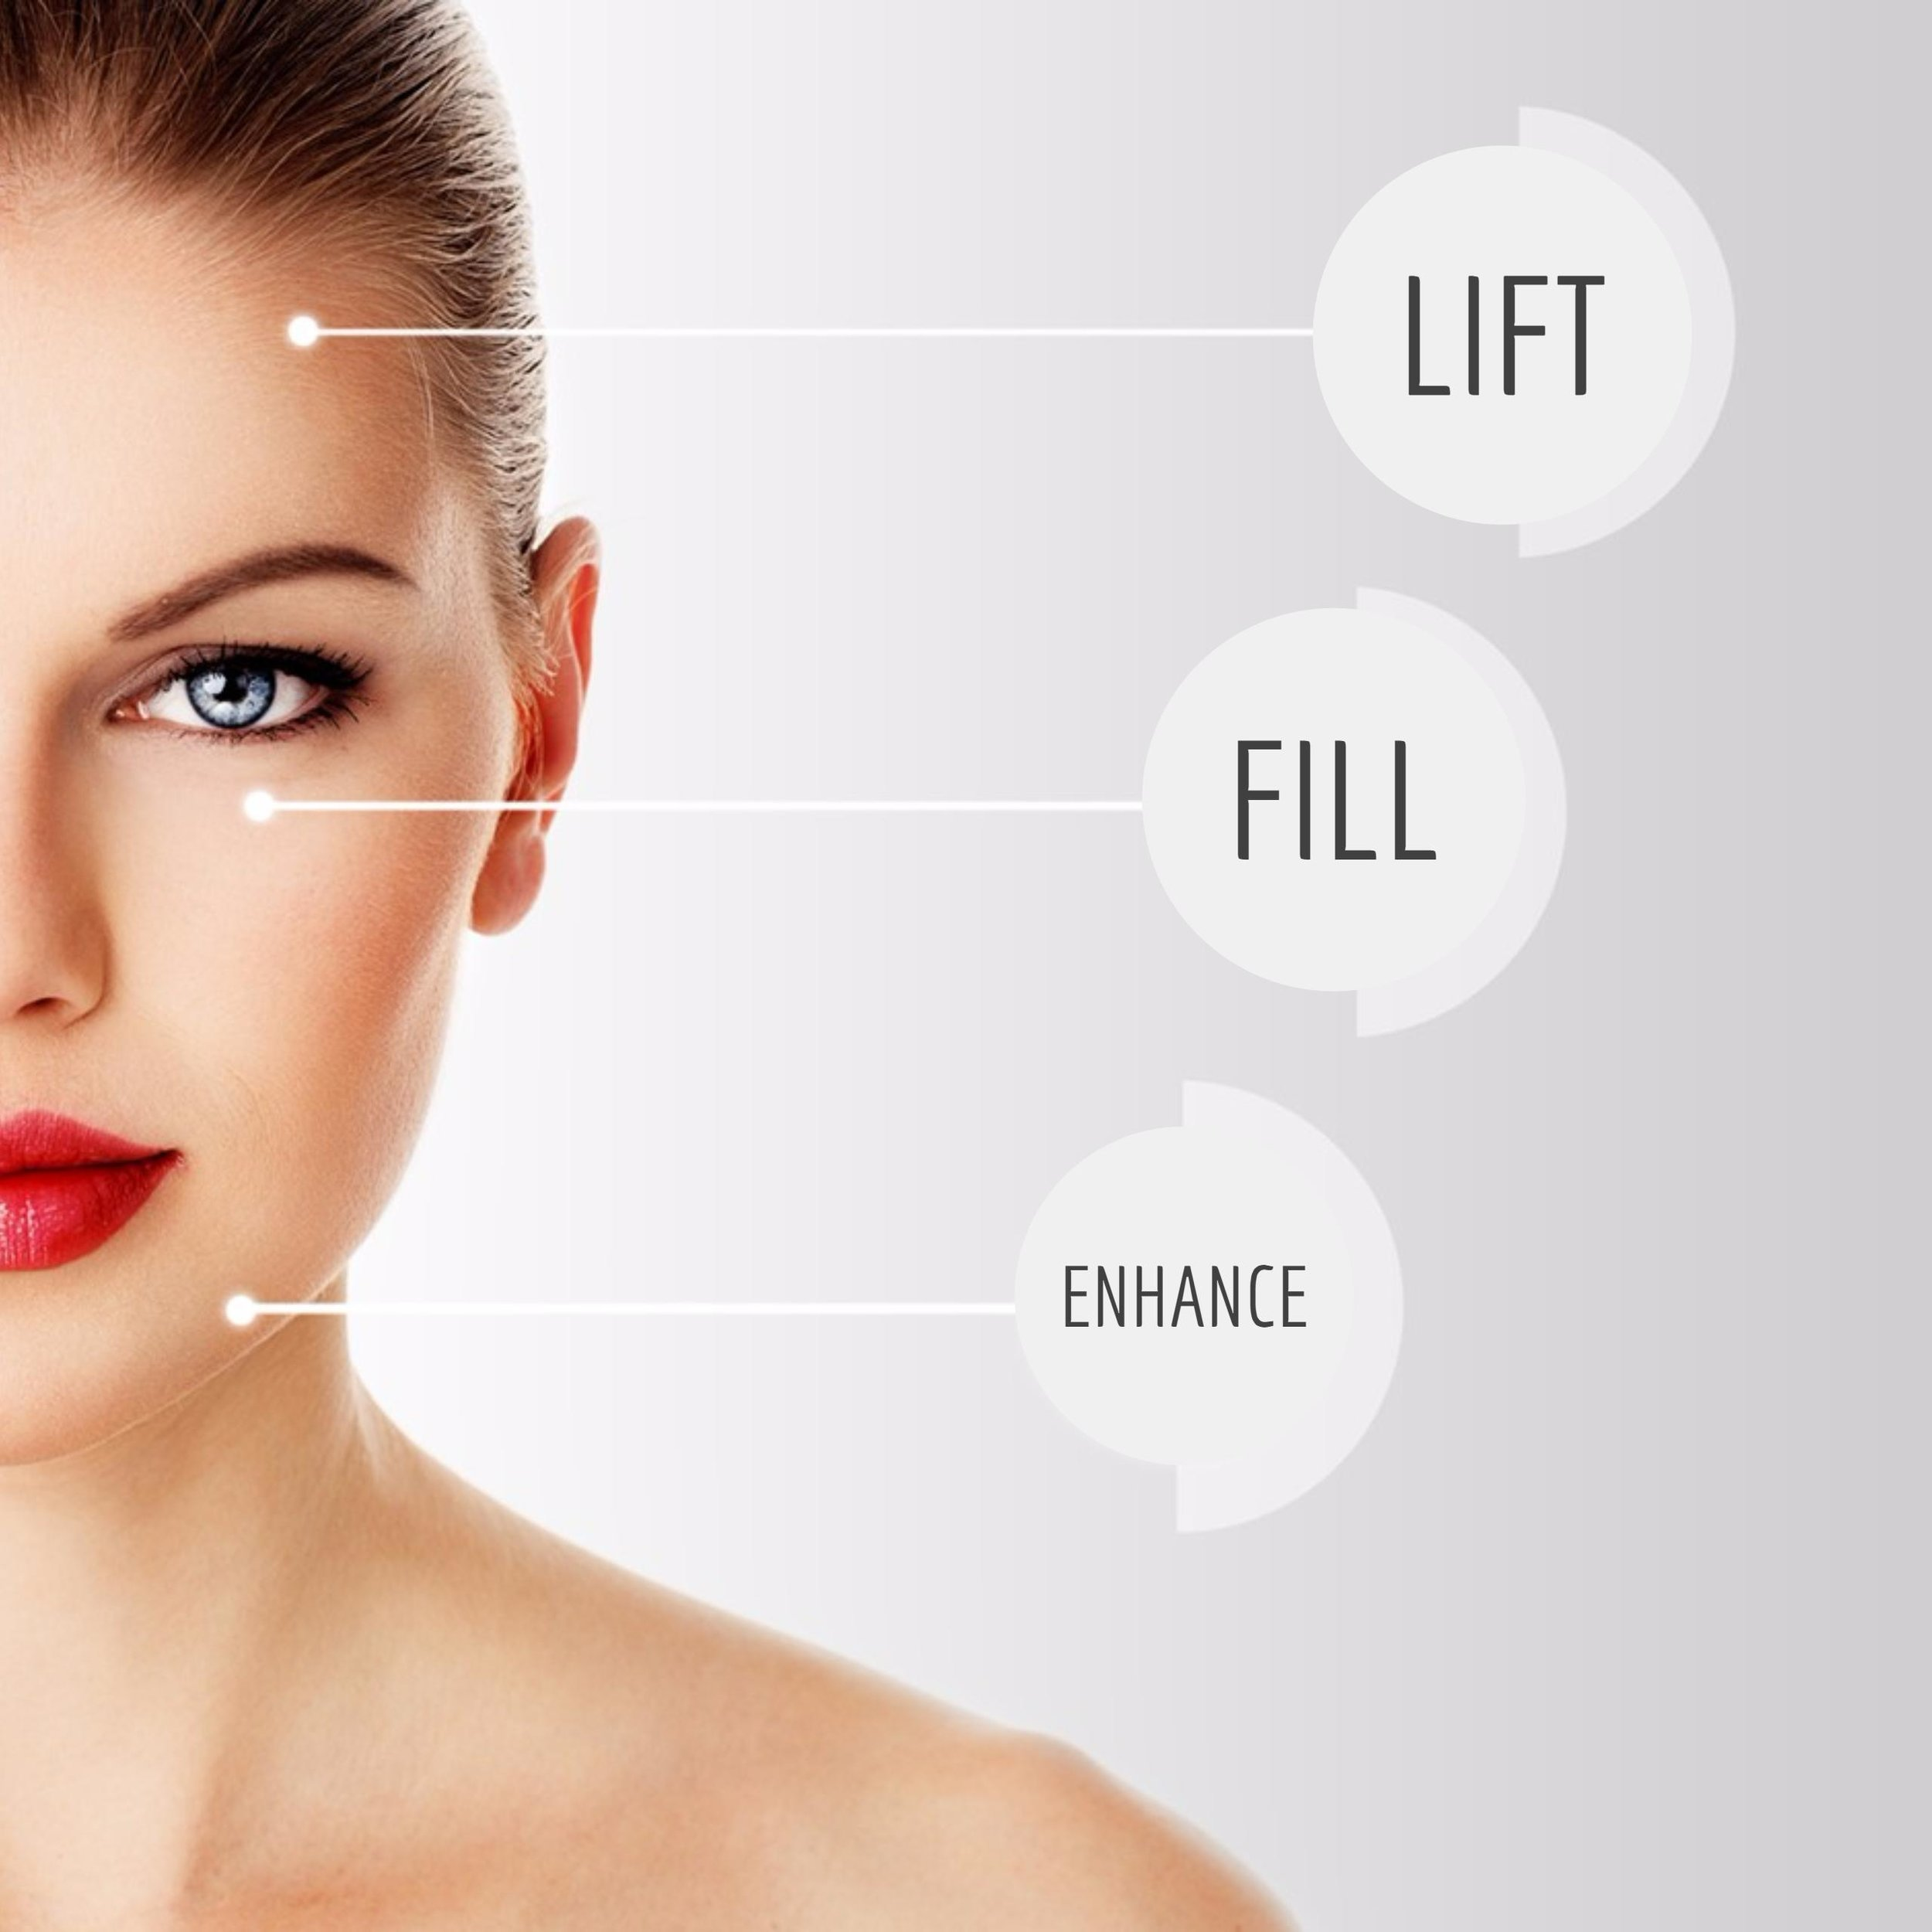 Dermal Fillers - are injectable treatments that can restore youthful volume and fullness to the face, plump deeper facial lines and folds and provide contour and definition to the face. Over time, the effects of aging can take a toll on our appearance. Skin becomes thinner, loses its elasticity and is more prone to fine lines, wrinkles, creases and folds. Fortunately, with the use of dermal fillers, which are injected beneath the skin's surface to fill depressed areas, a smoother more youthful appearance can be achieved.*All Ideal Skin MedSpa filler treatments are performed by a highly trained and certified medical provider.